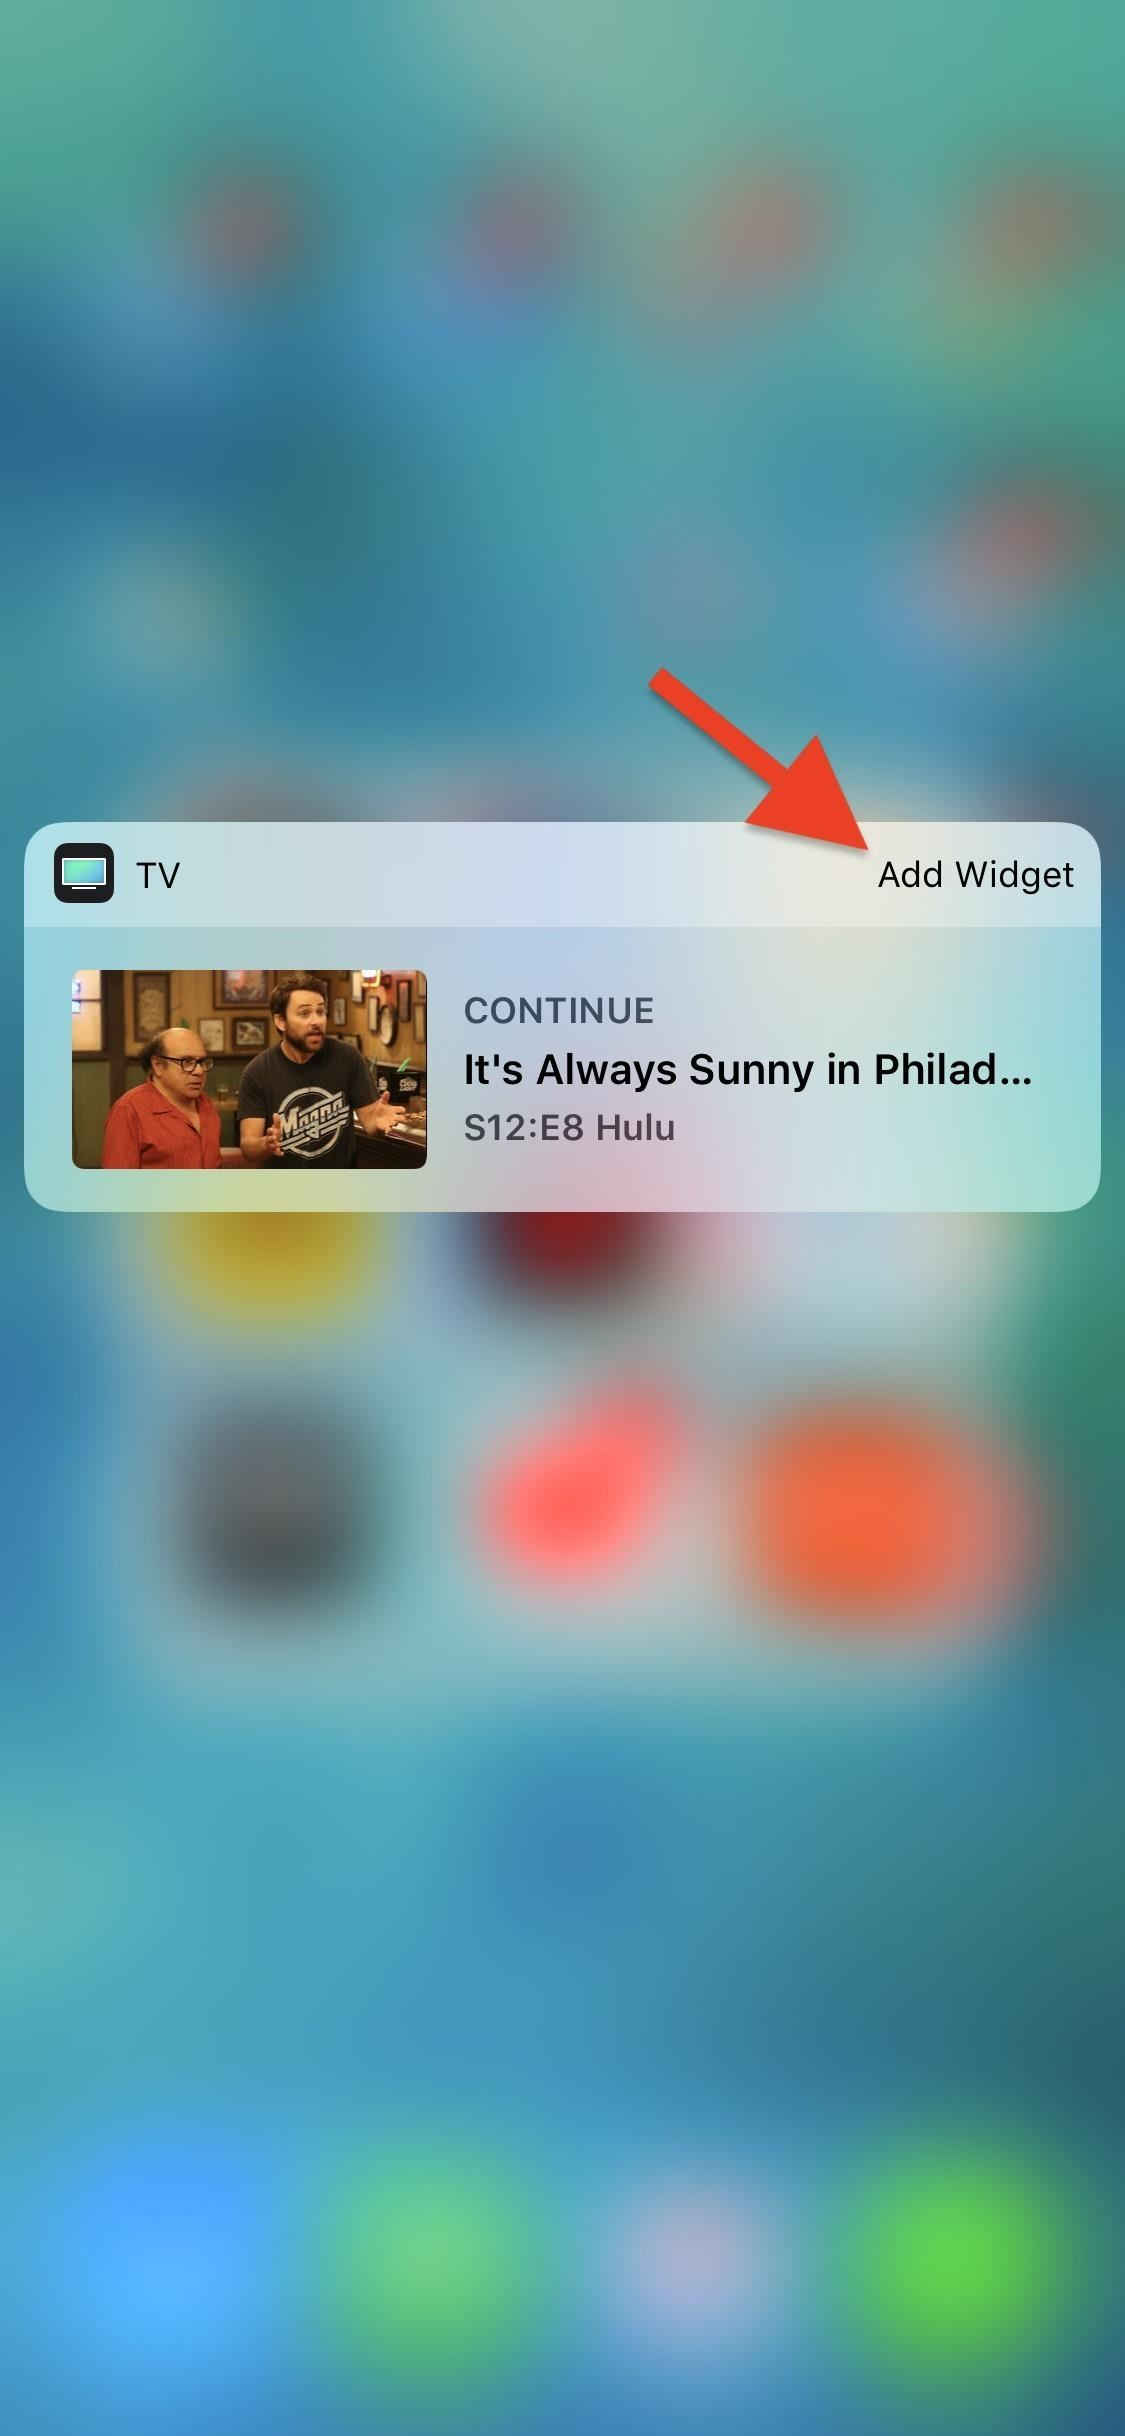 iOS Basics: How to Add Widgets to Your iPhone's Lock Screen & Notification Center